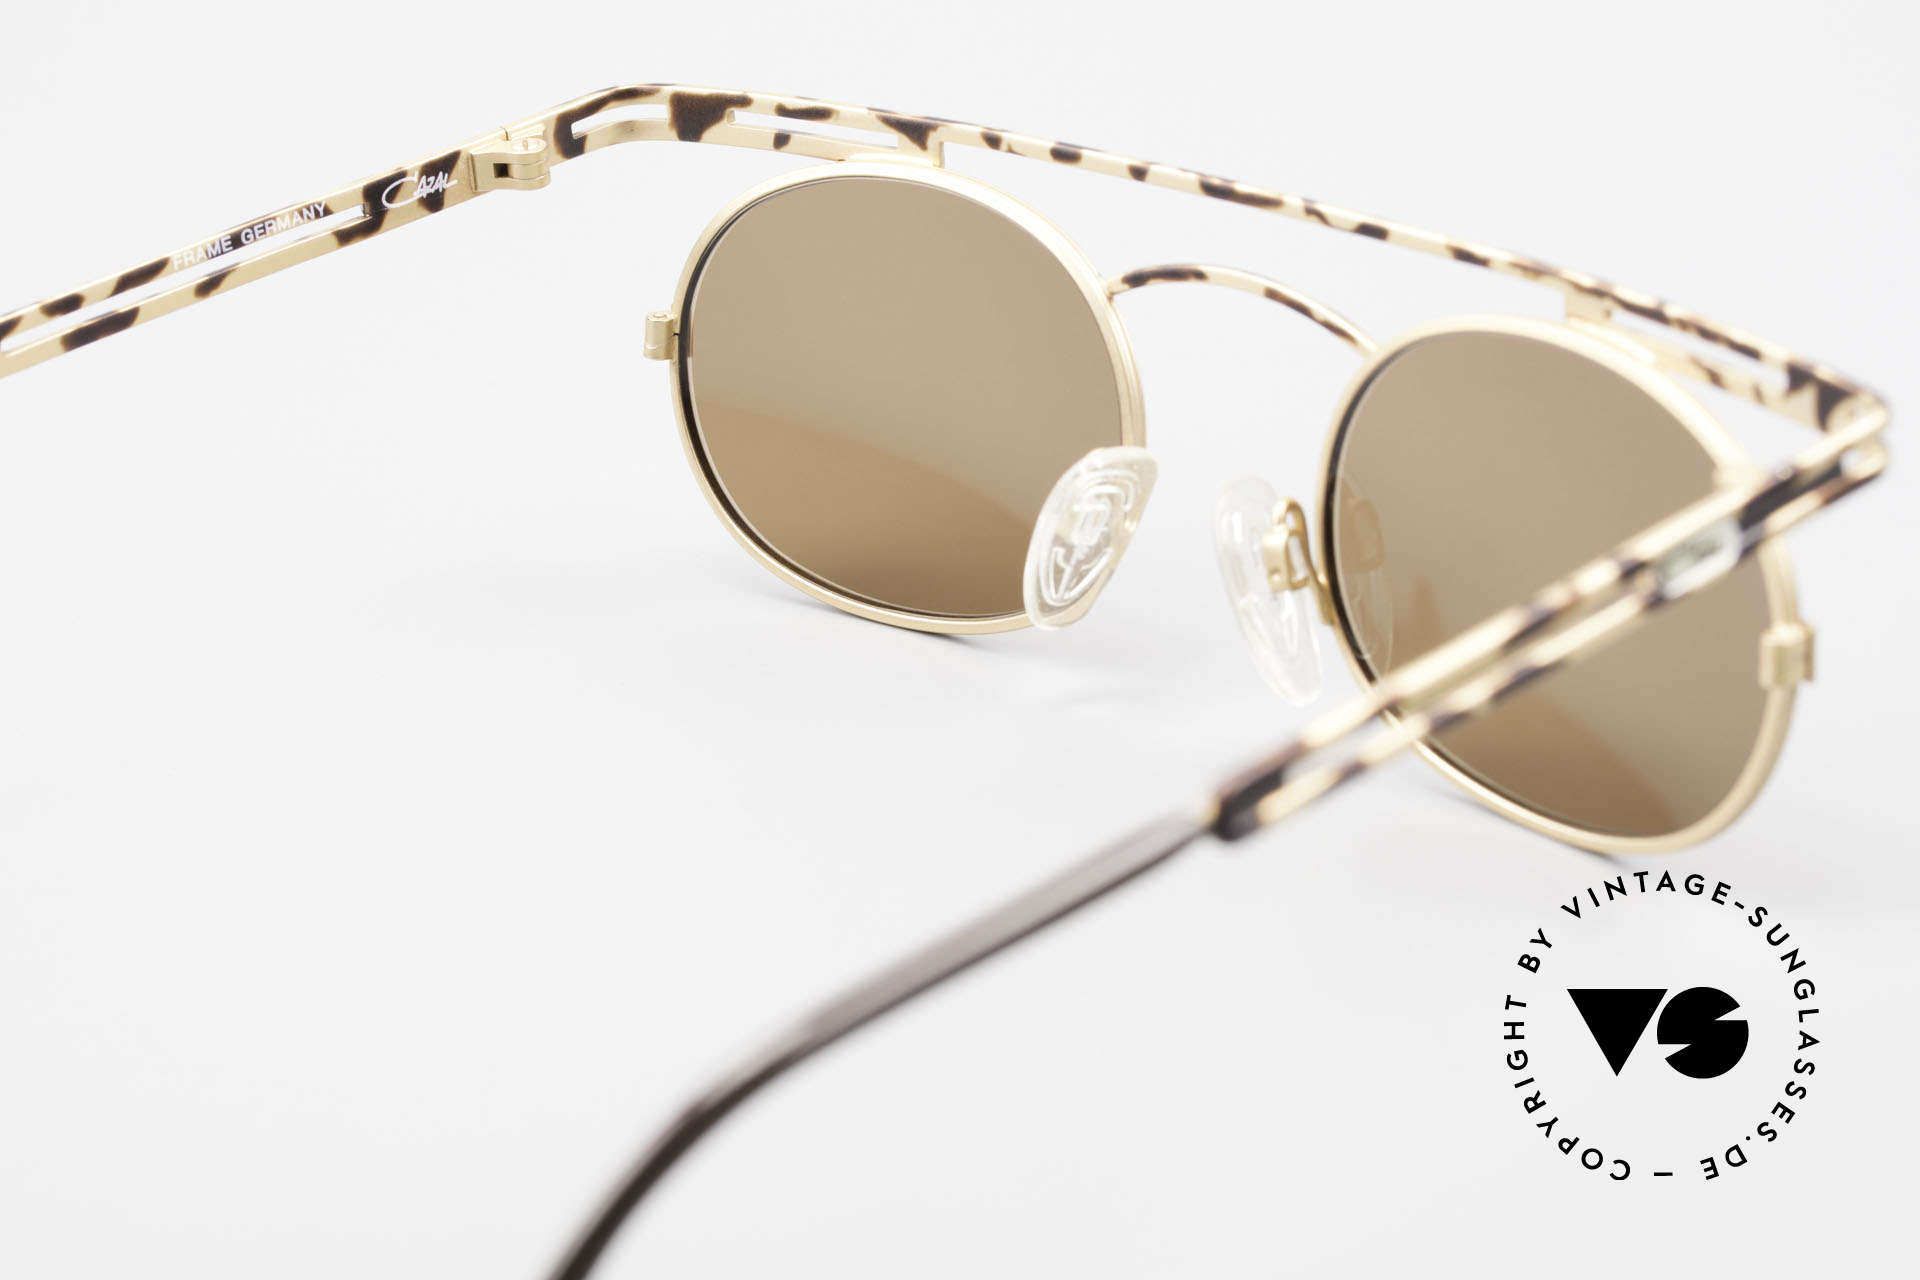 Cazal 761 Rare Old Cazal 90's Sunglasses, the sun lenses (100% UV) can be replaced optionally, Made for Men and Women